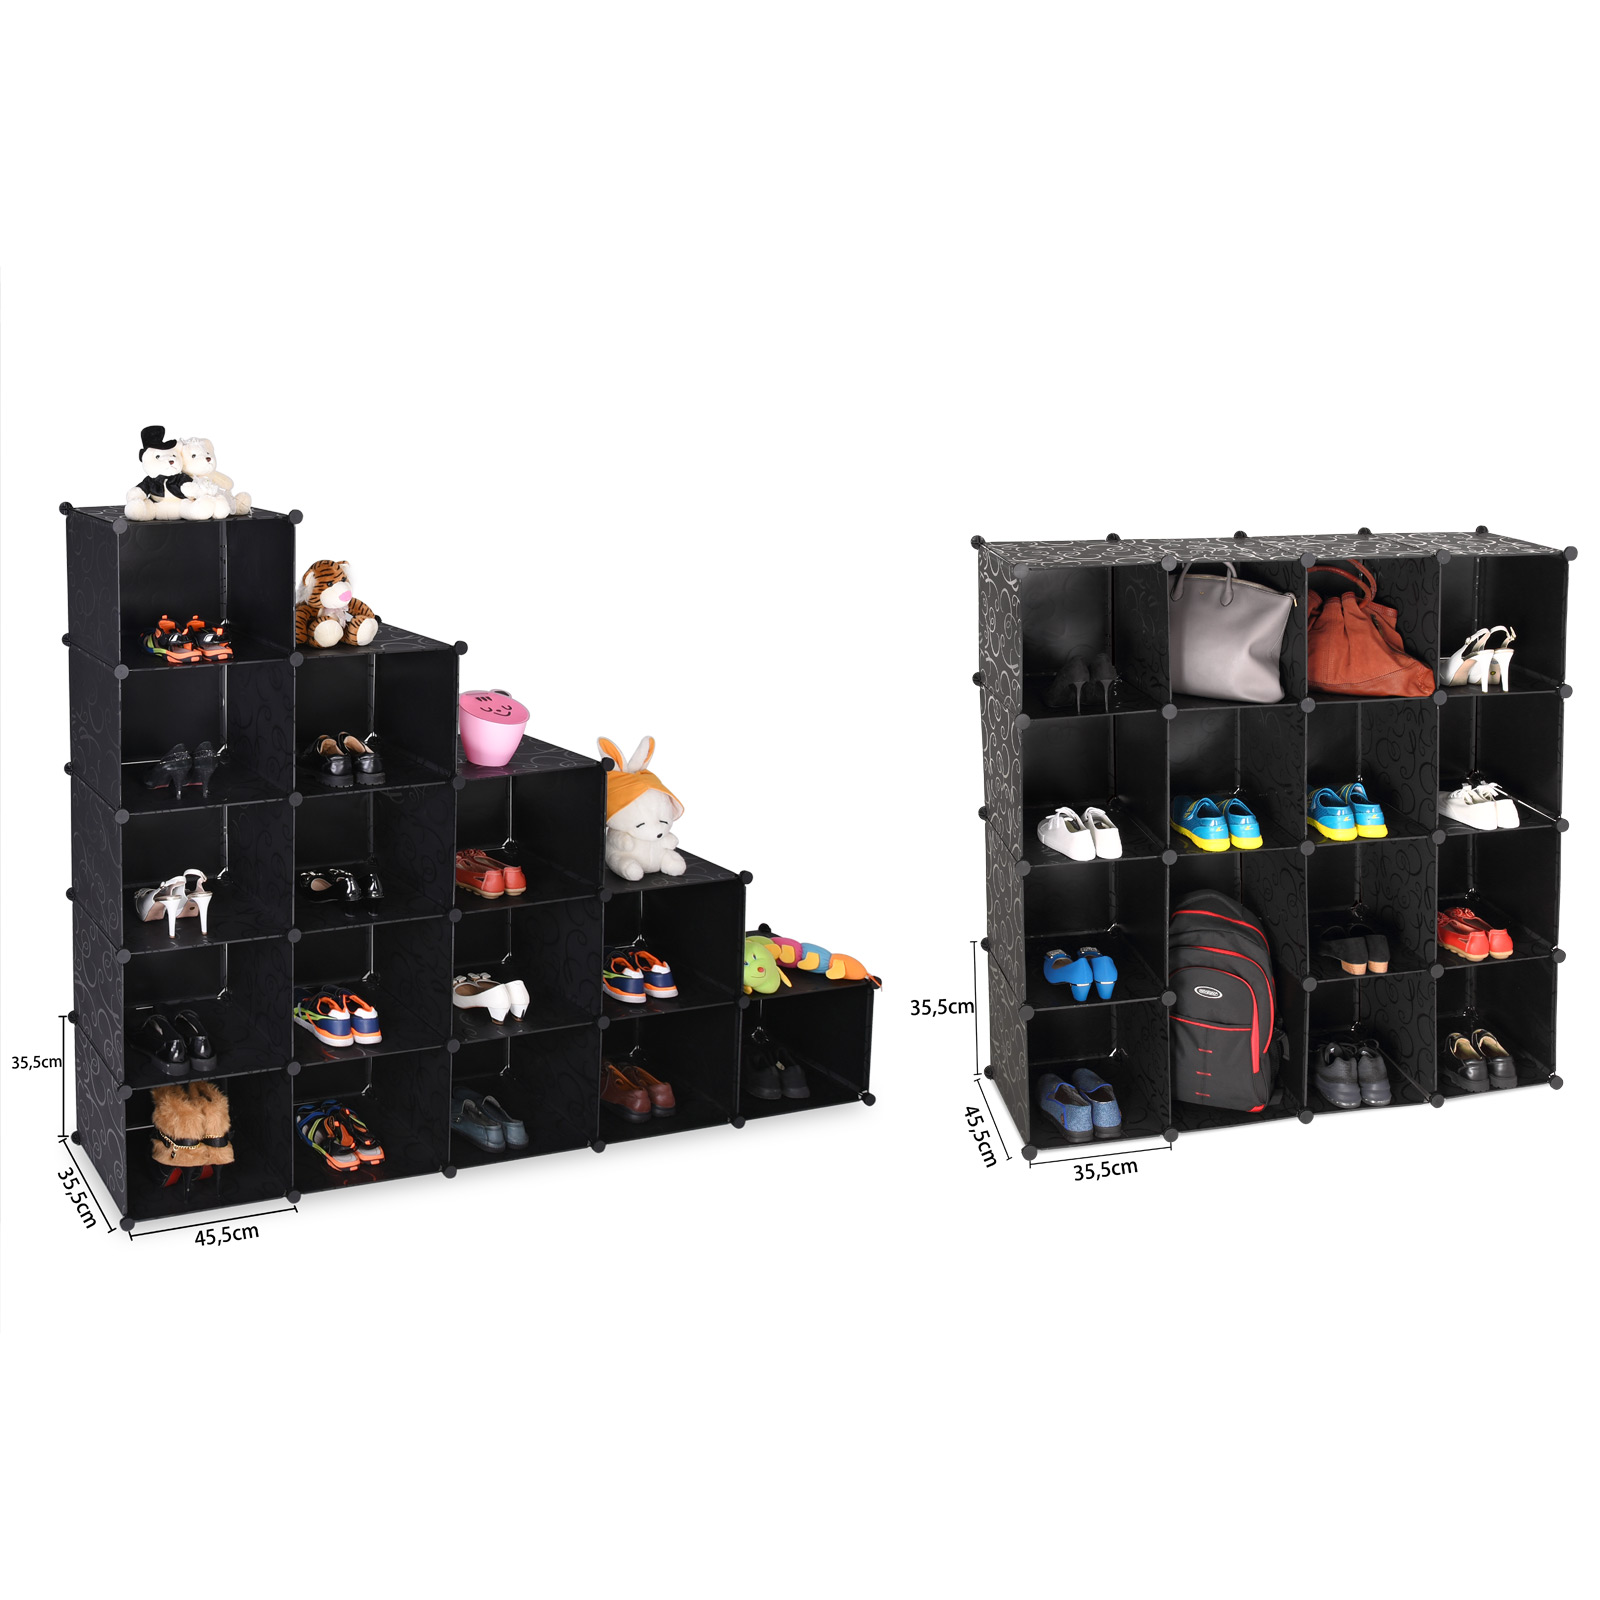 kleiderschrank diy schrank regalsystem steckregal badregal. Black Bedroom Furniture Sets. Home Design Ideas